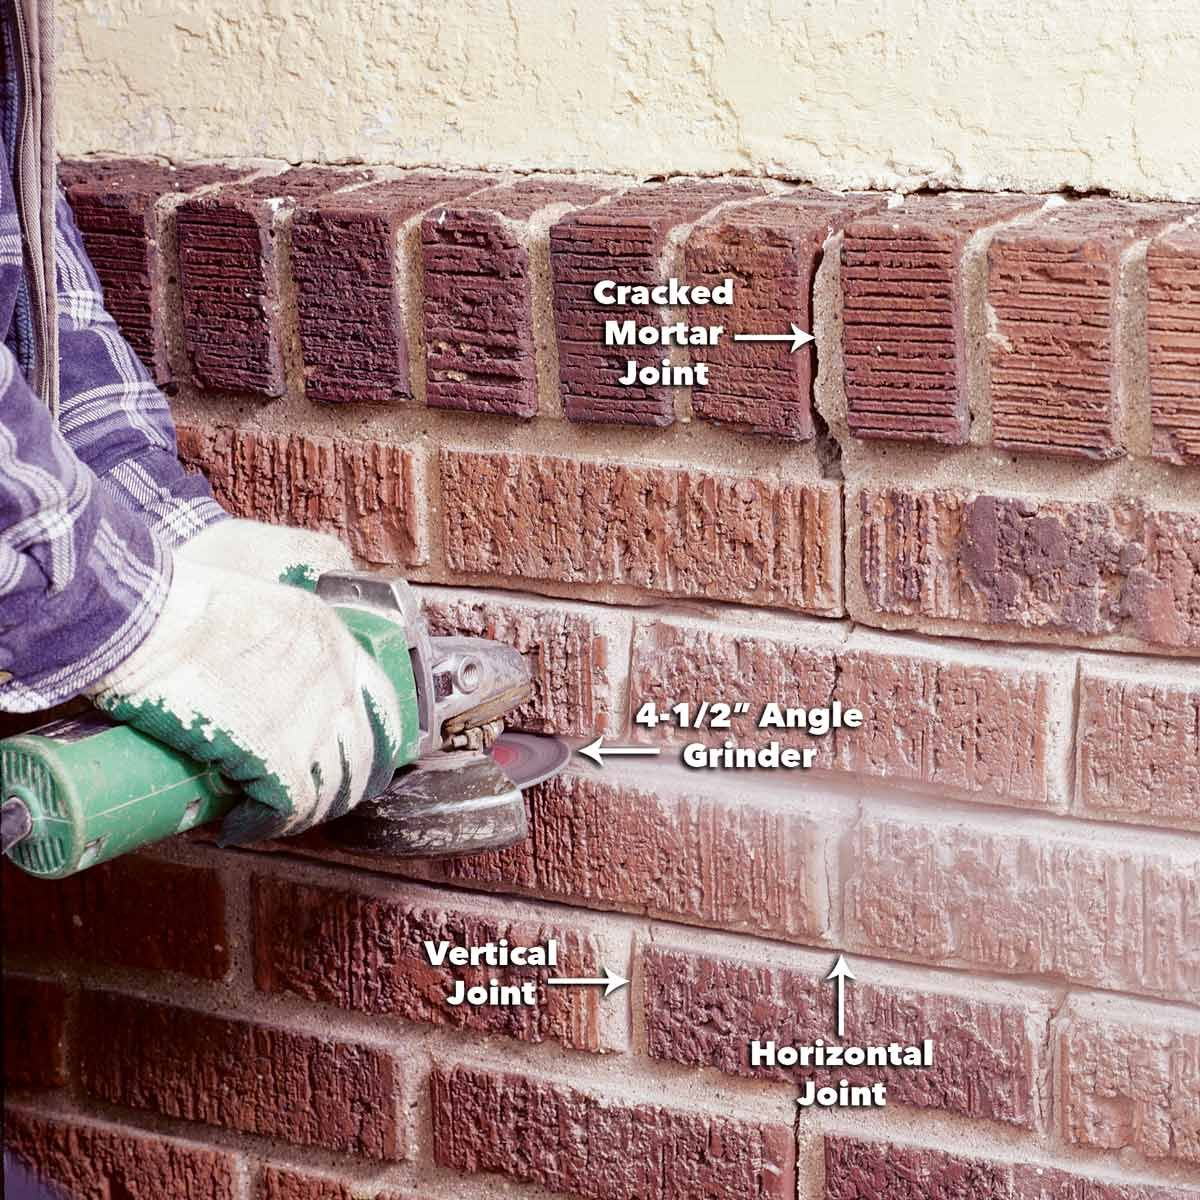 How To Repair Mortar Joints Mortar Repair Brick Repair Mortar